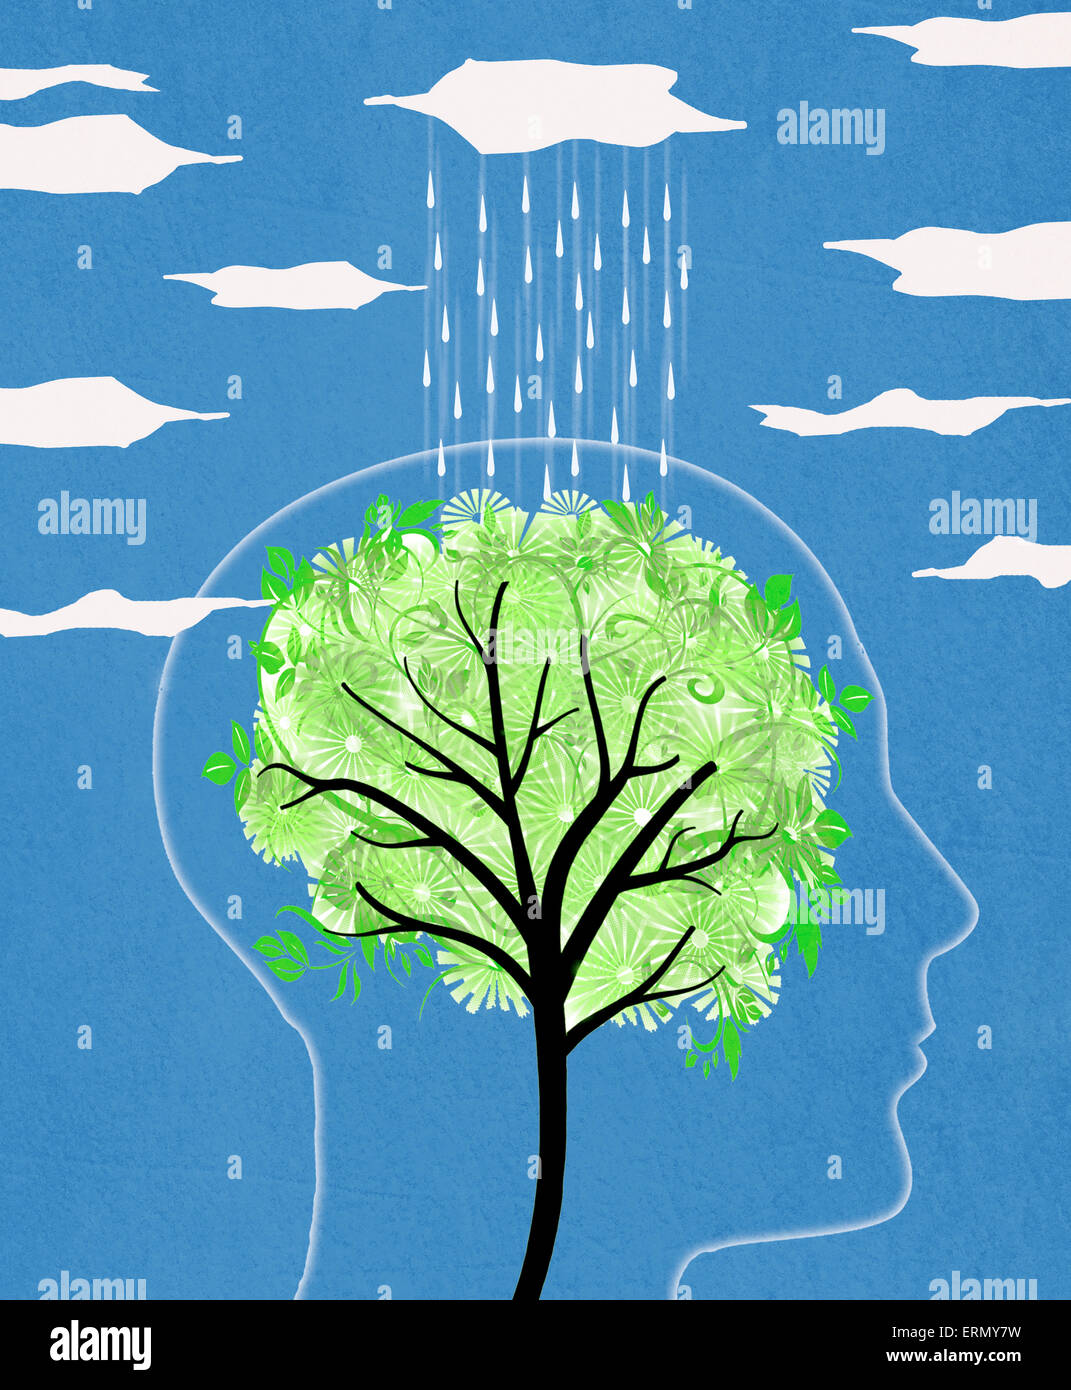 head silhouette with tree and rain  digital illustration - Stock Image